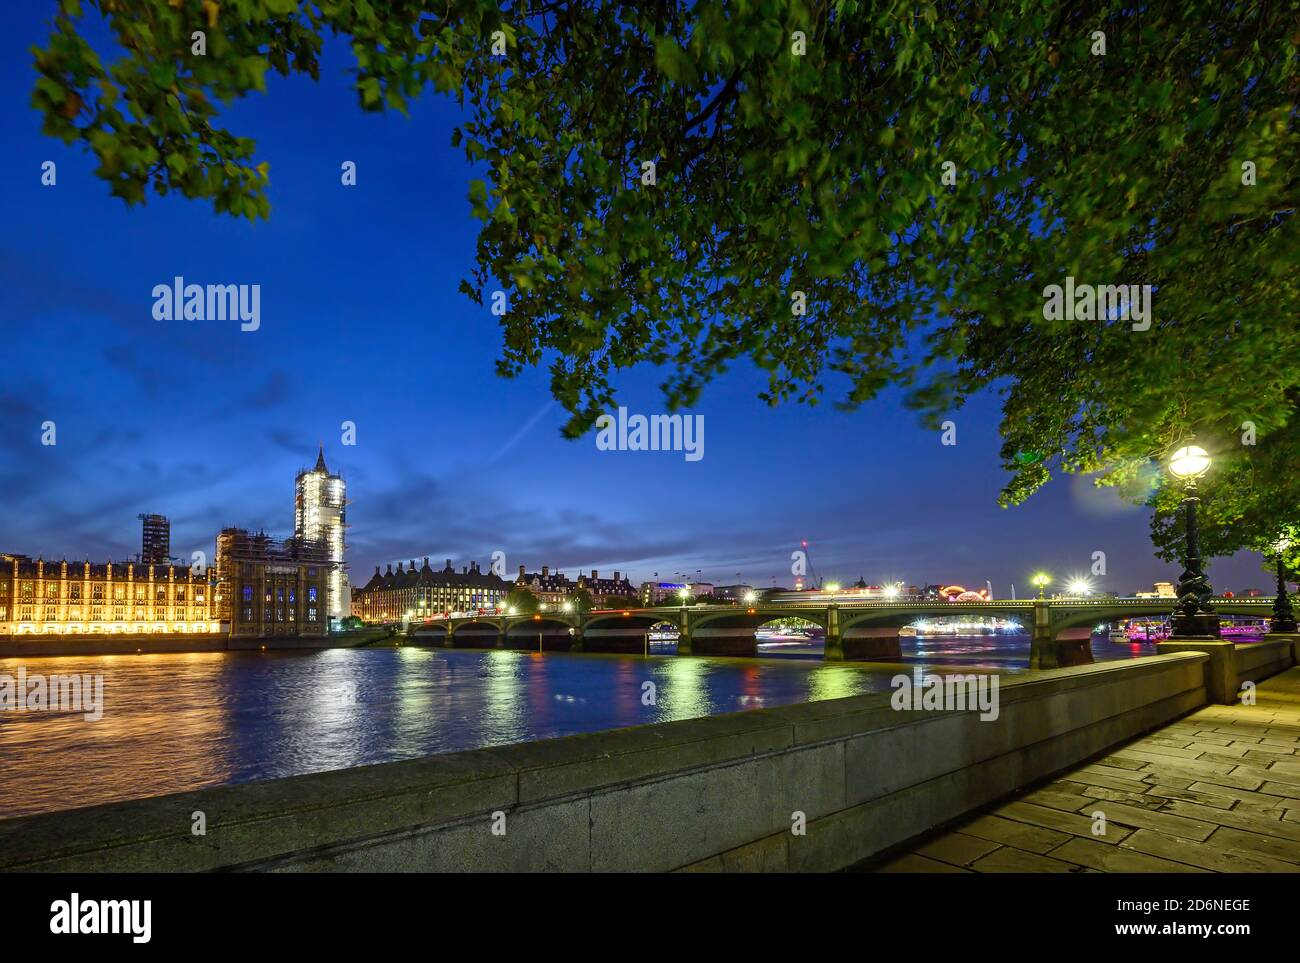 Houses of Parliament in Westminster, London, UK. View across the Thames with Westminster Bridge. Vehicle light trails and long exposure motion blur. Stock Photo